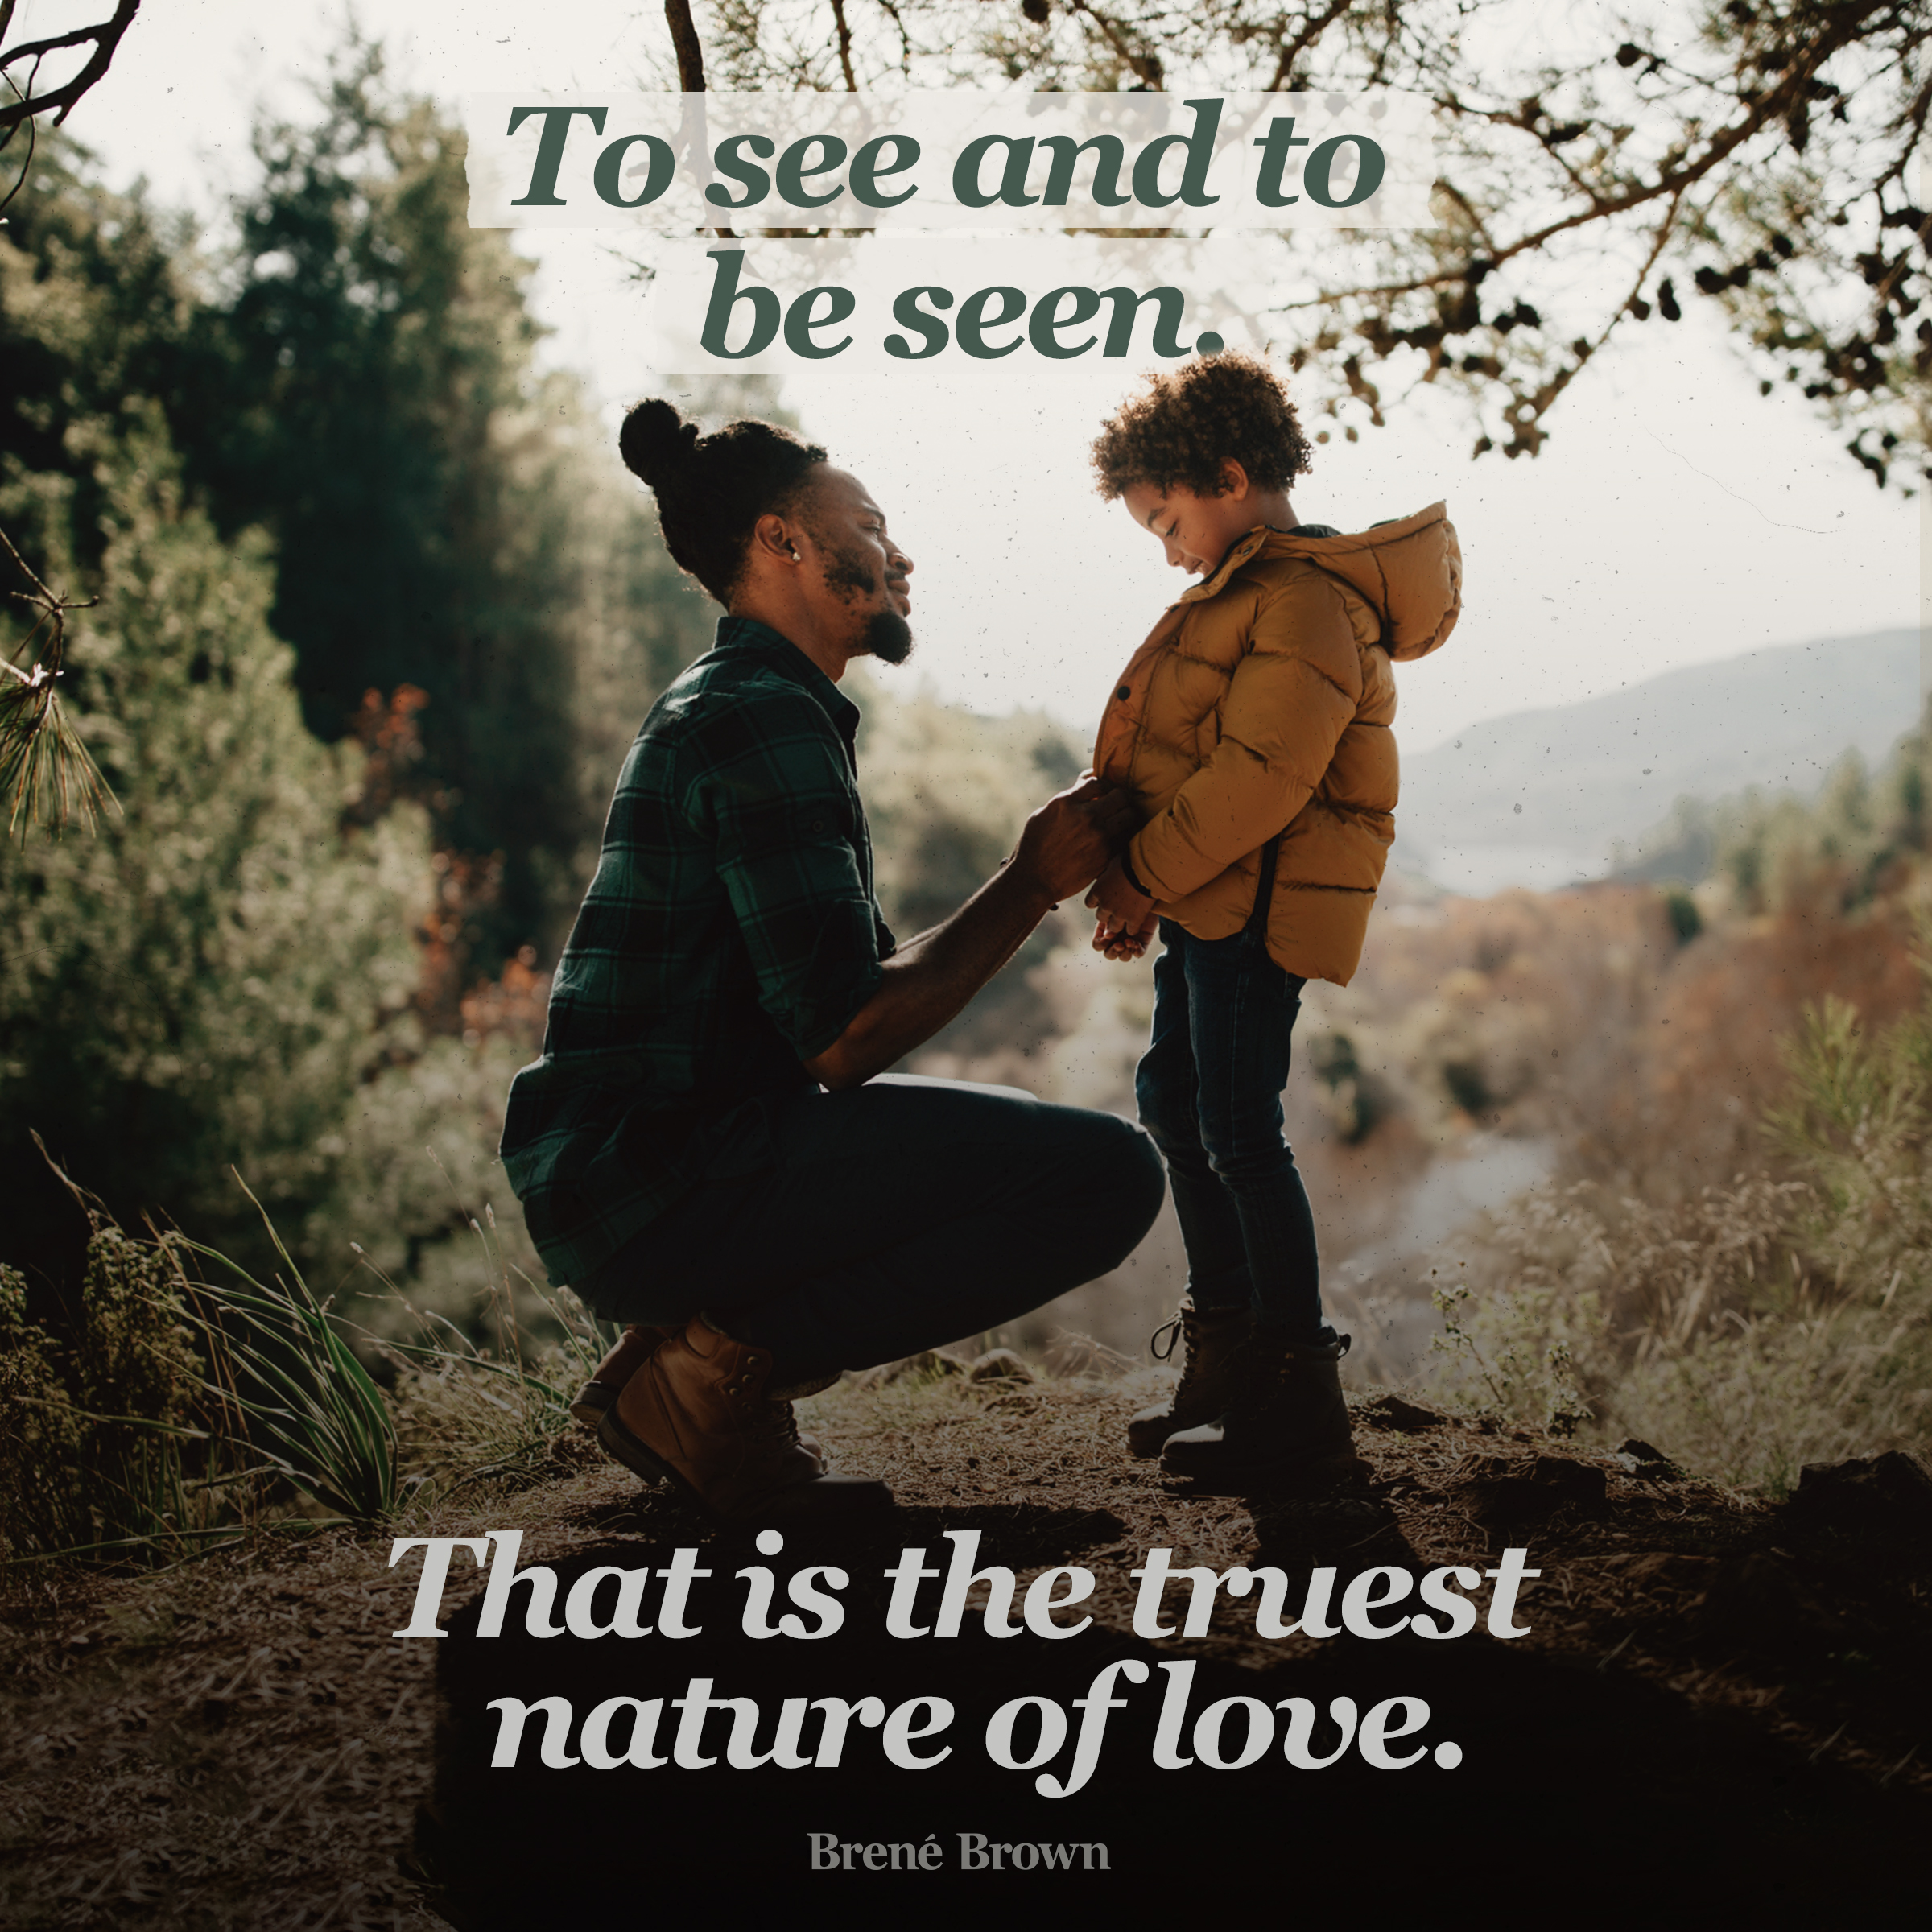 To-see-and-to-be-seen_That-is-the-truest-nature-of-love-1